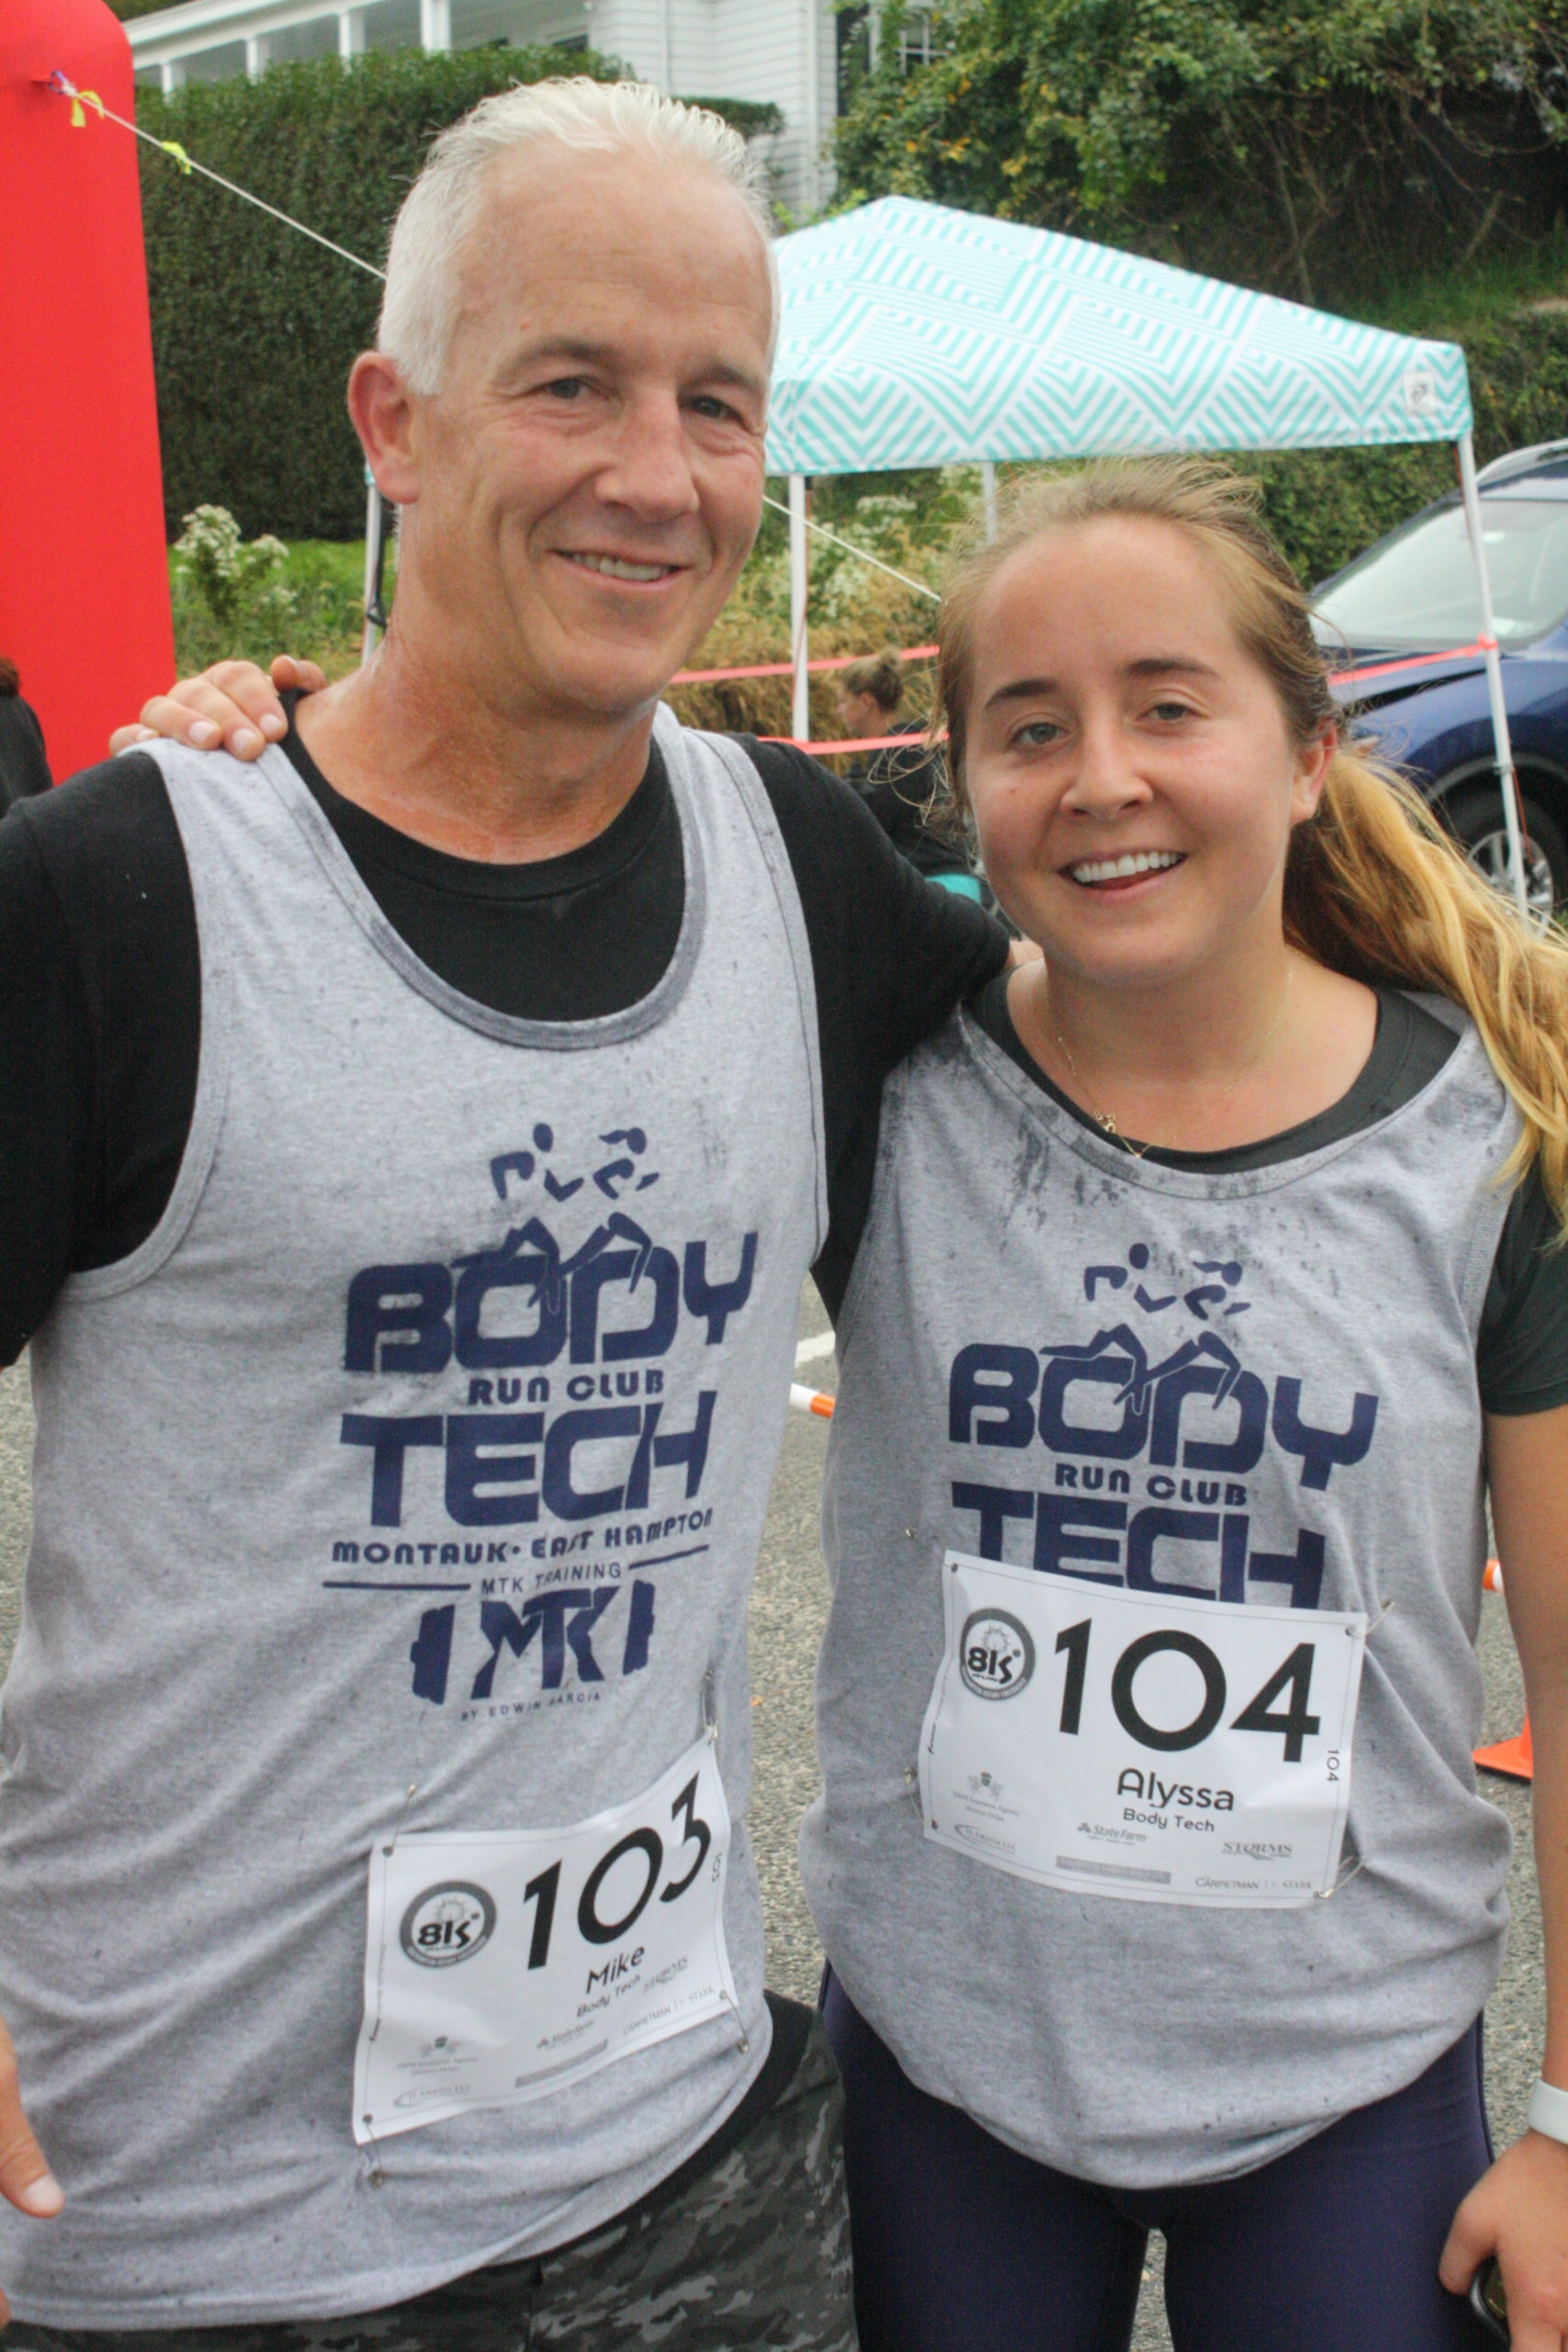 Mike Bahel and his daughter, Alyssa Bahel, who was the top female finisher in the race.